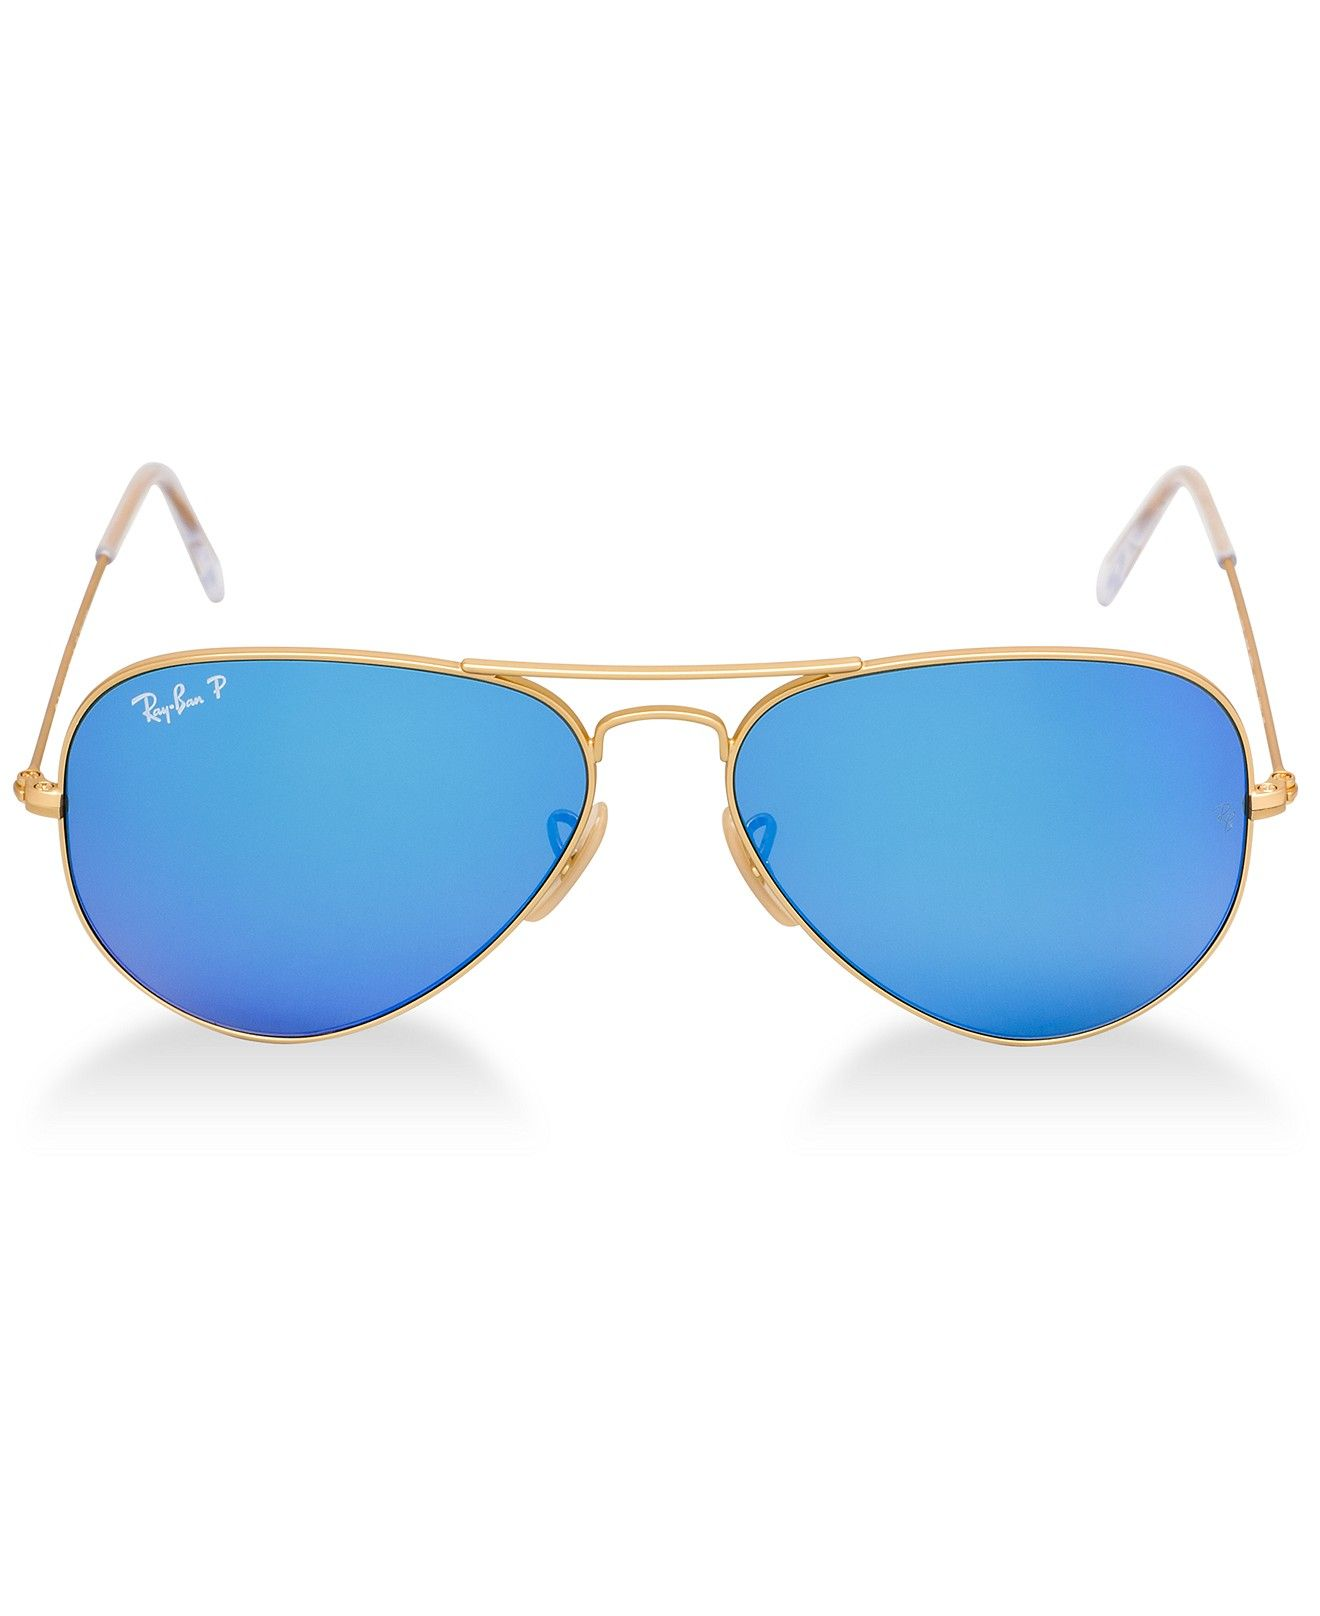 ray ban aviator sunglasses macy's